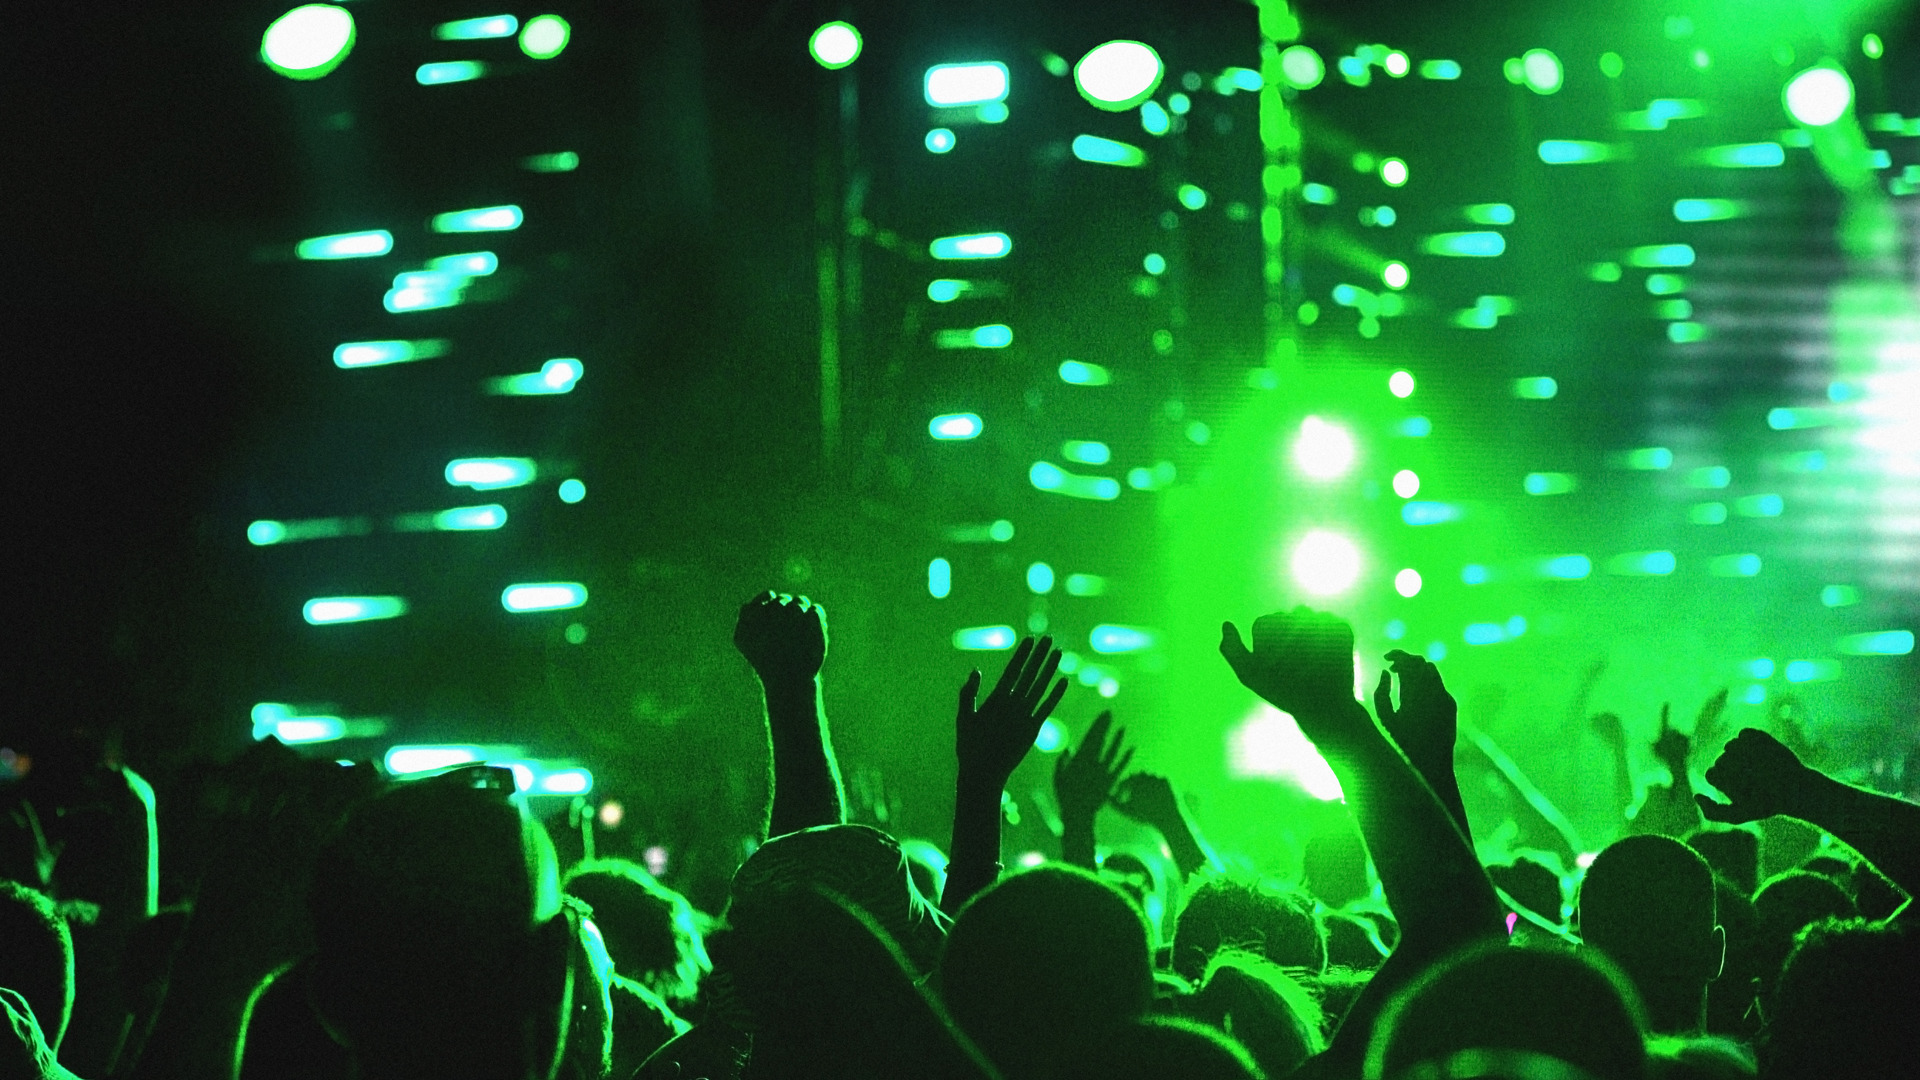 The future of events is green.